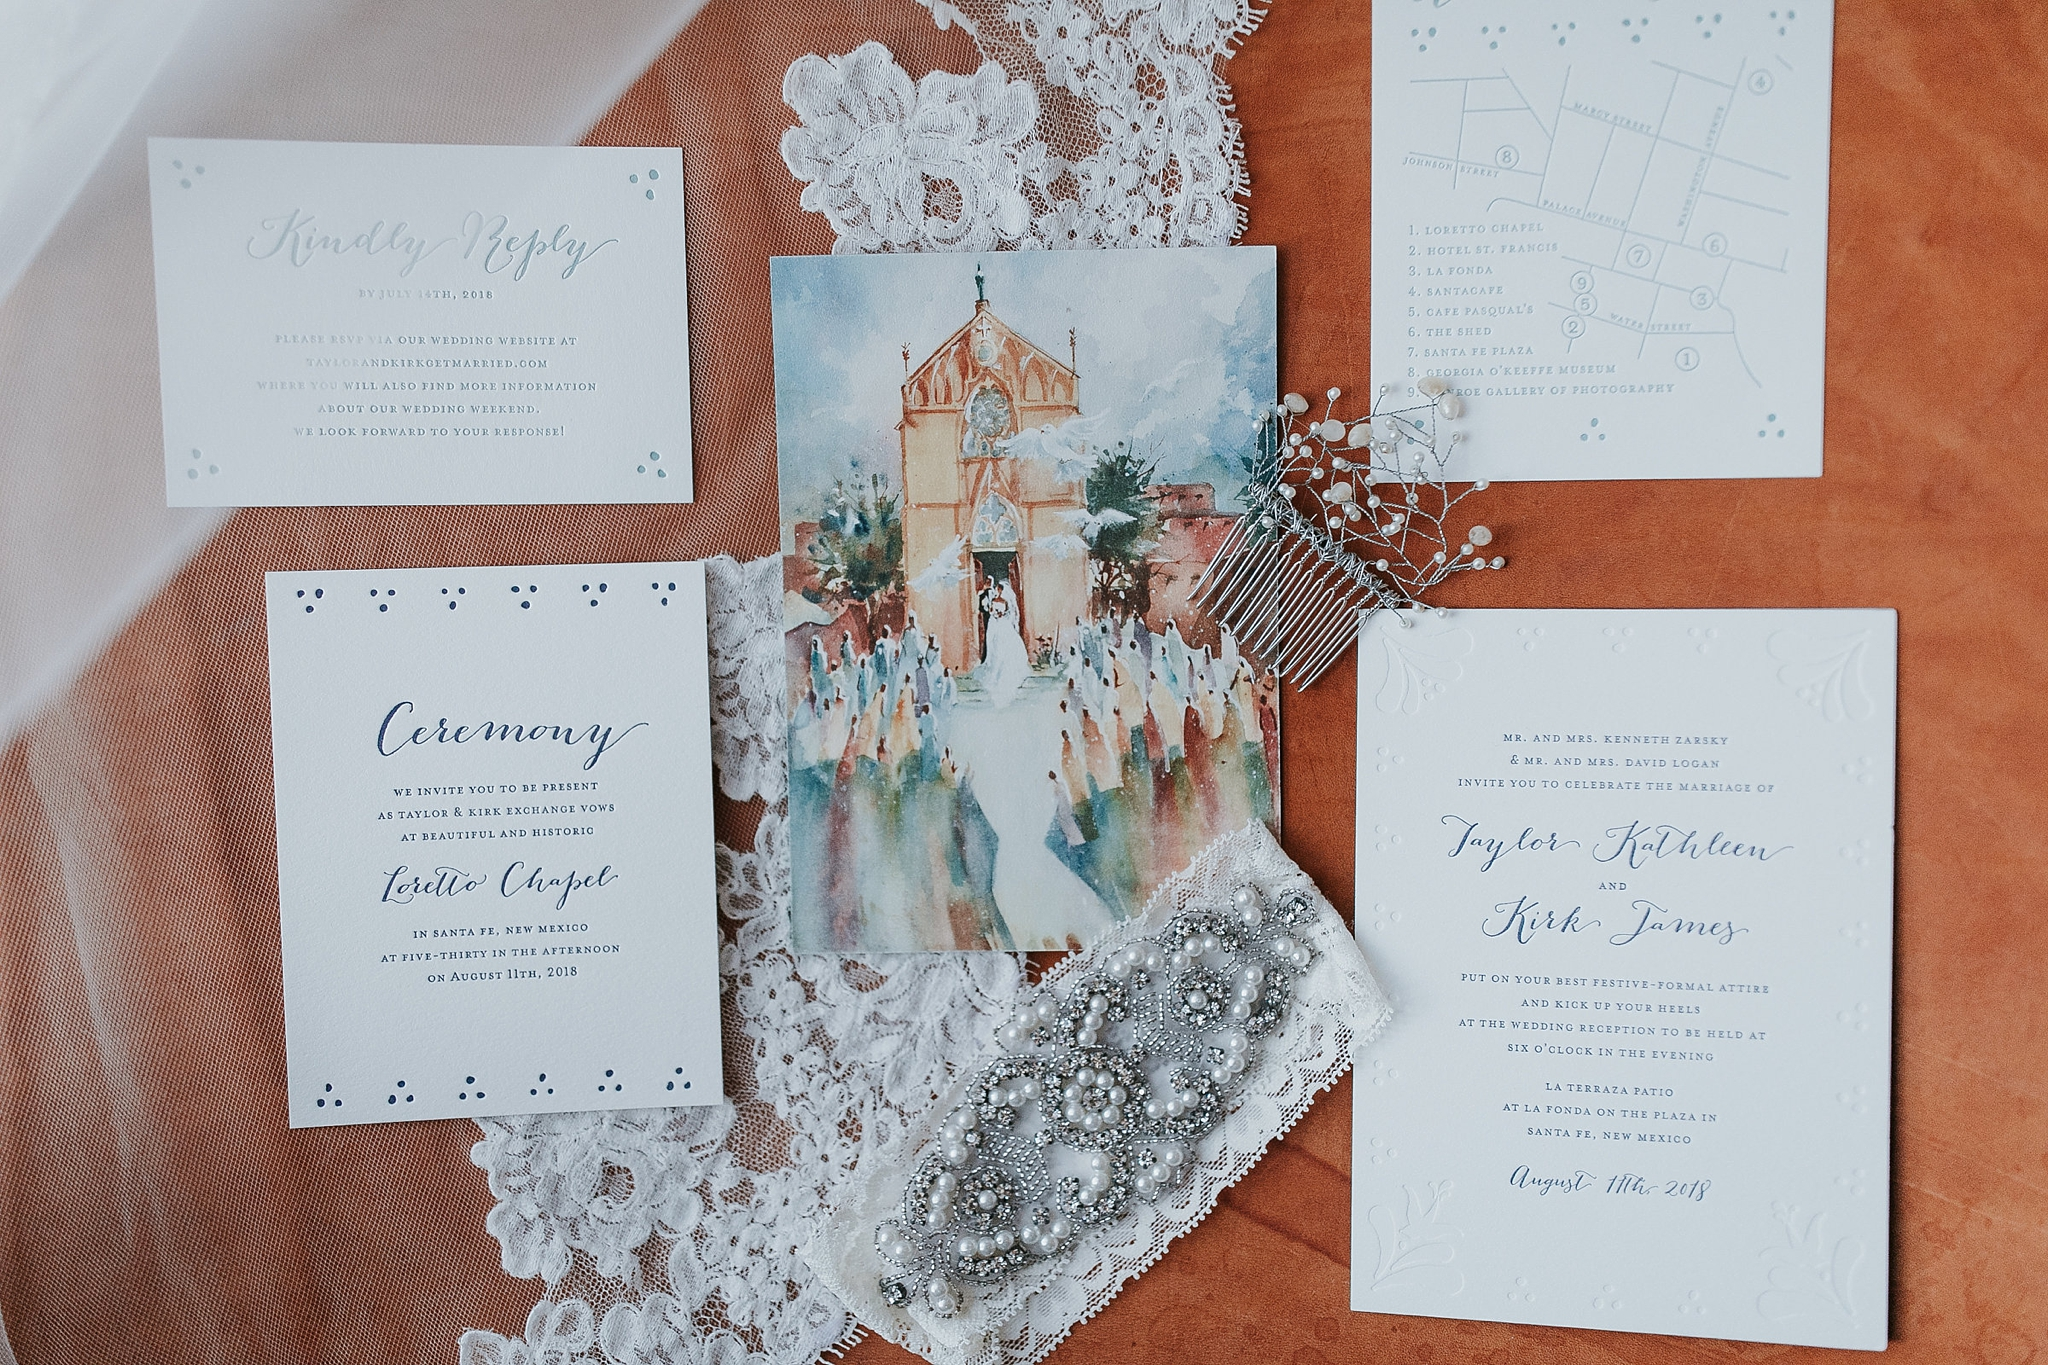 Alicia+lucia+photography+-+albuquerque+wedding+photographer+-+santa+fe+wedding+photography+-+new+mexico+wedding+photographer+-+new+mexico+wedding+-+wedding+invitations+-+invitation+suite+-+wedding+inspo_0001.jpg